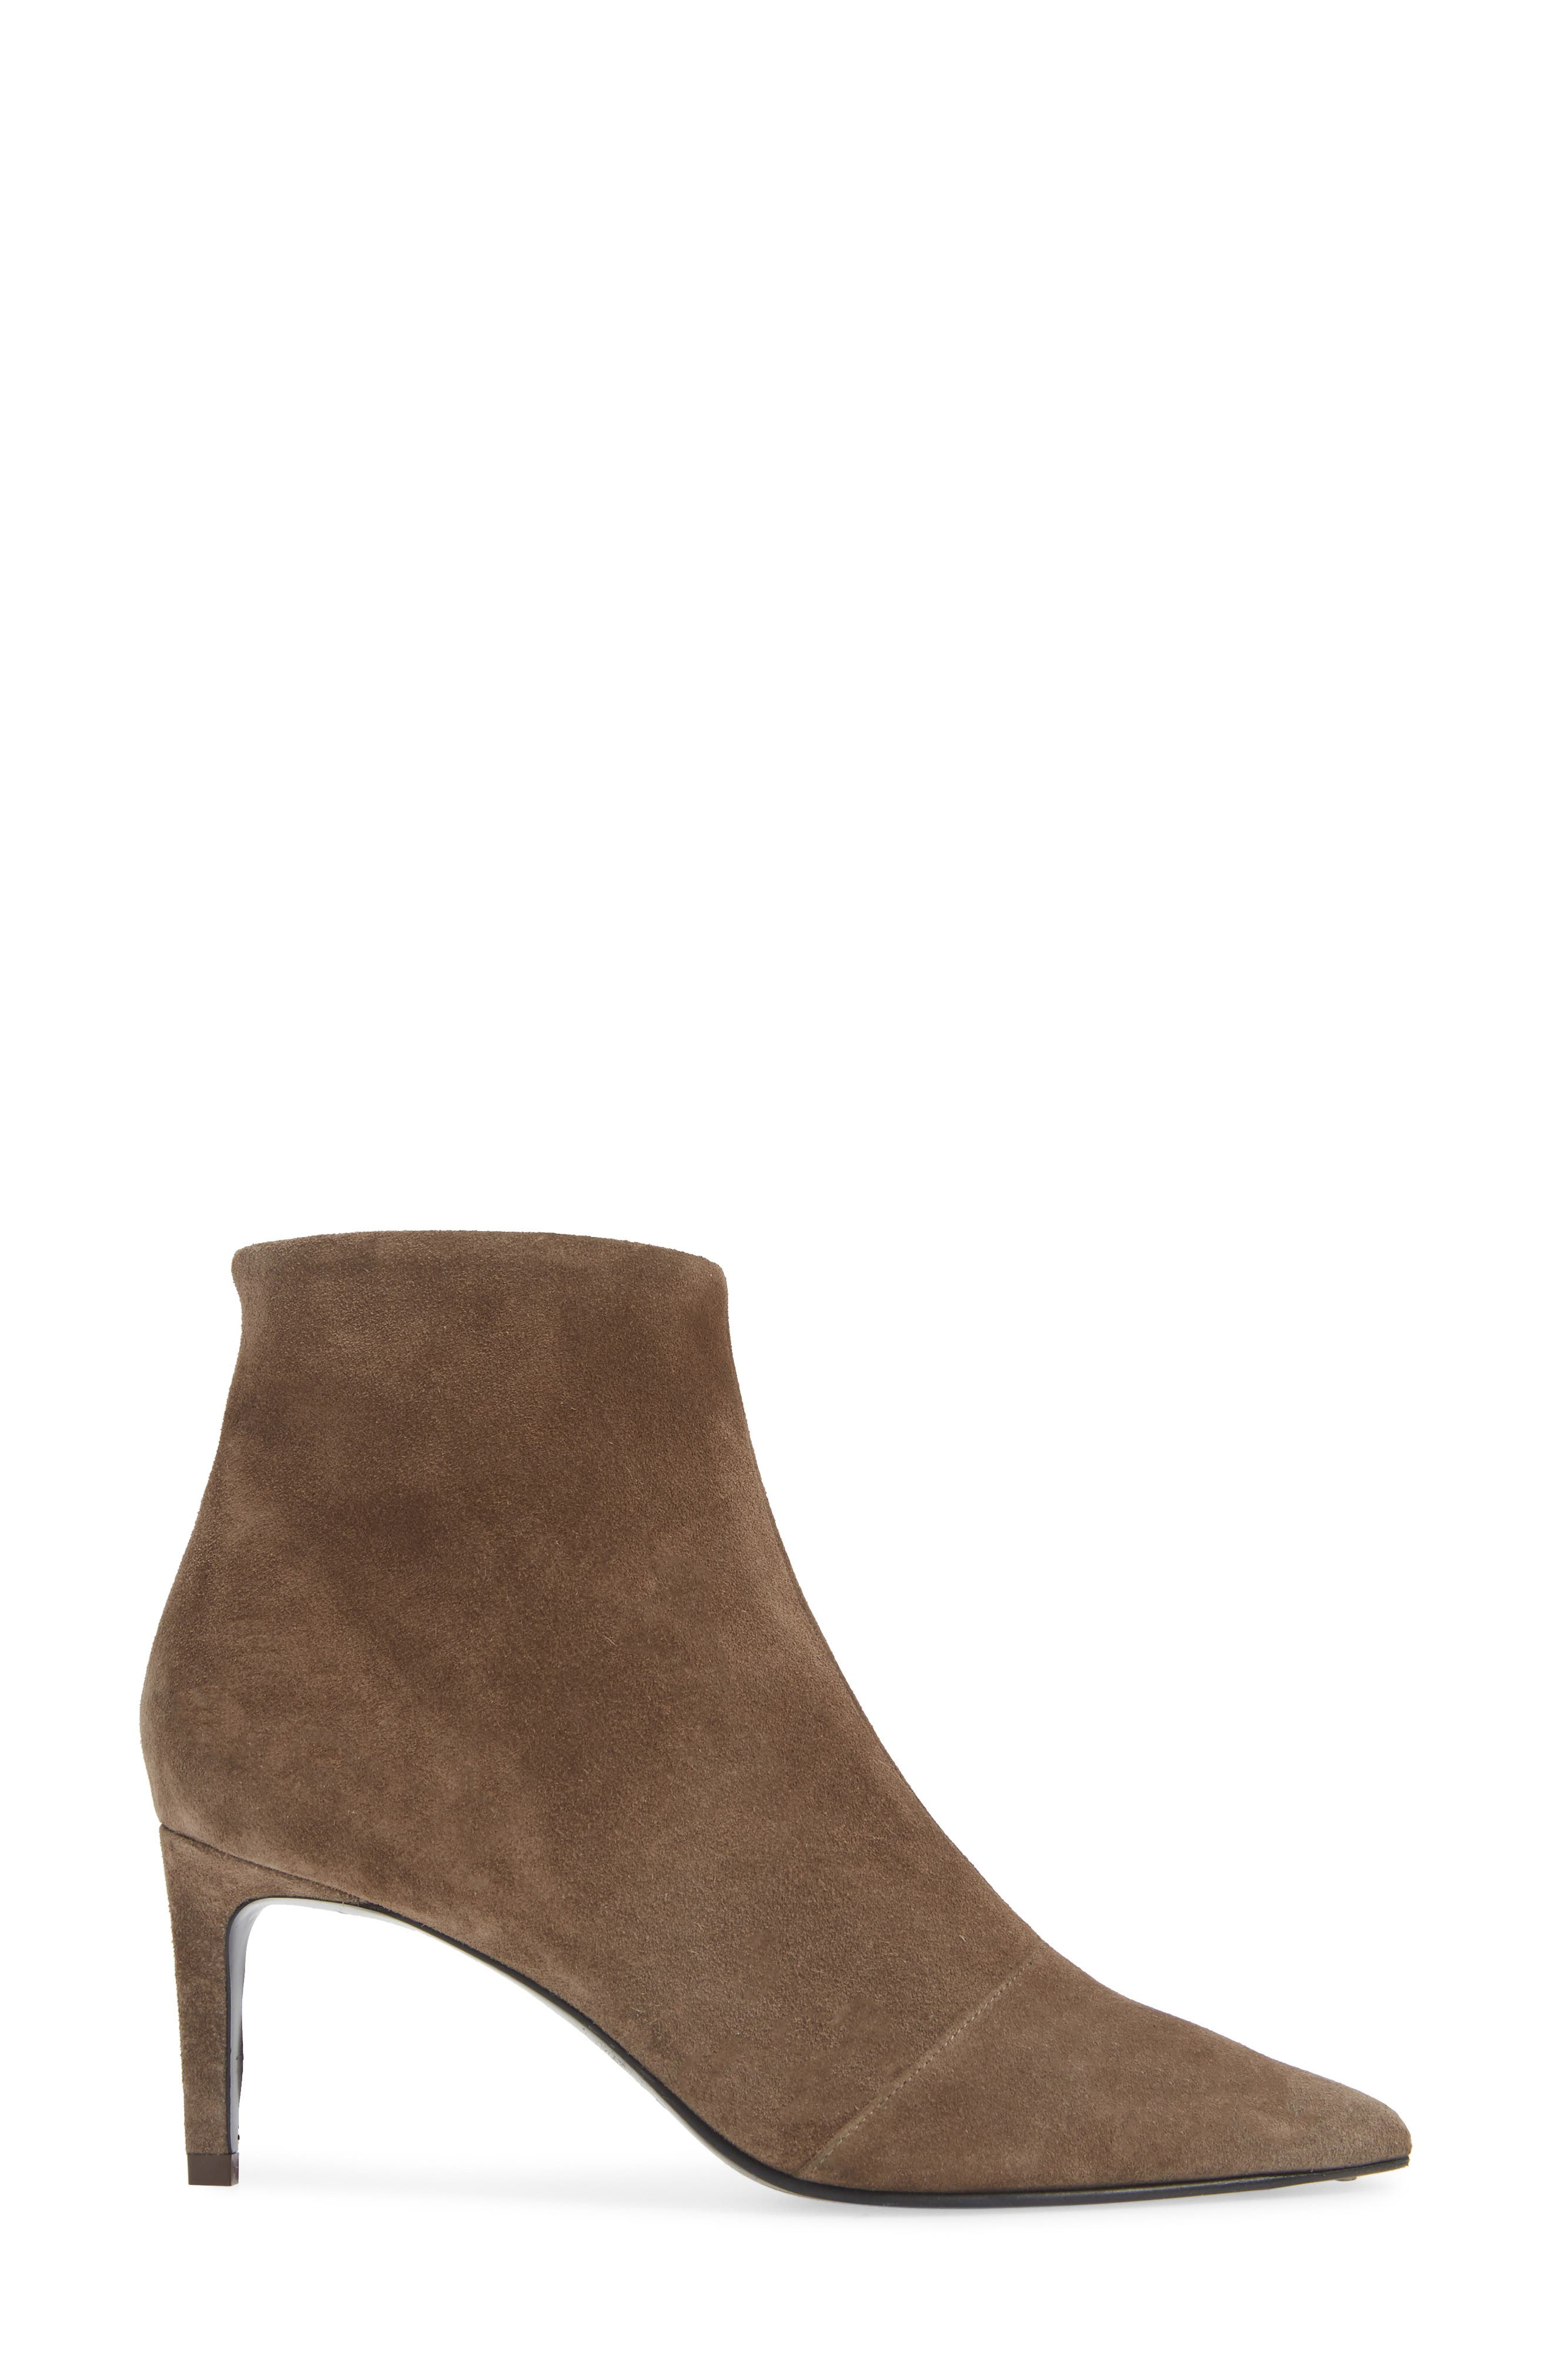 Beha Pointy Toe Bootie,                             Alternate thumbnail 3, color,                             TAUPE SUEDE